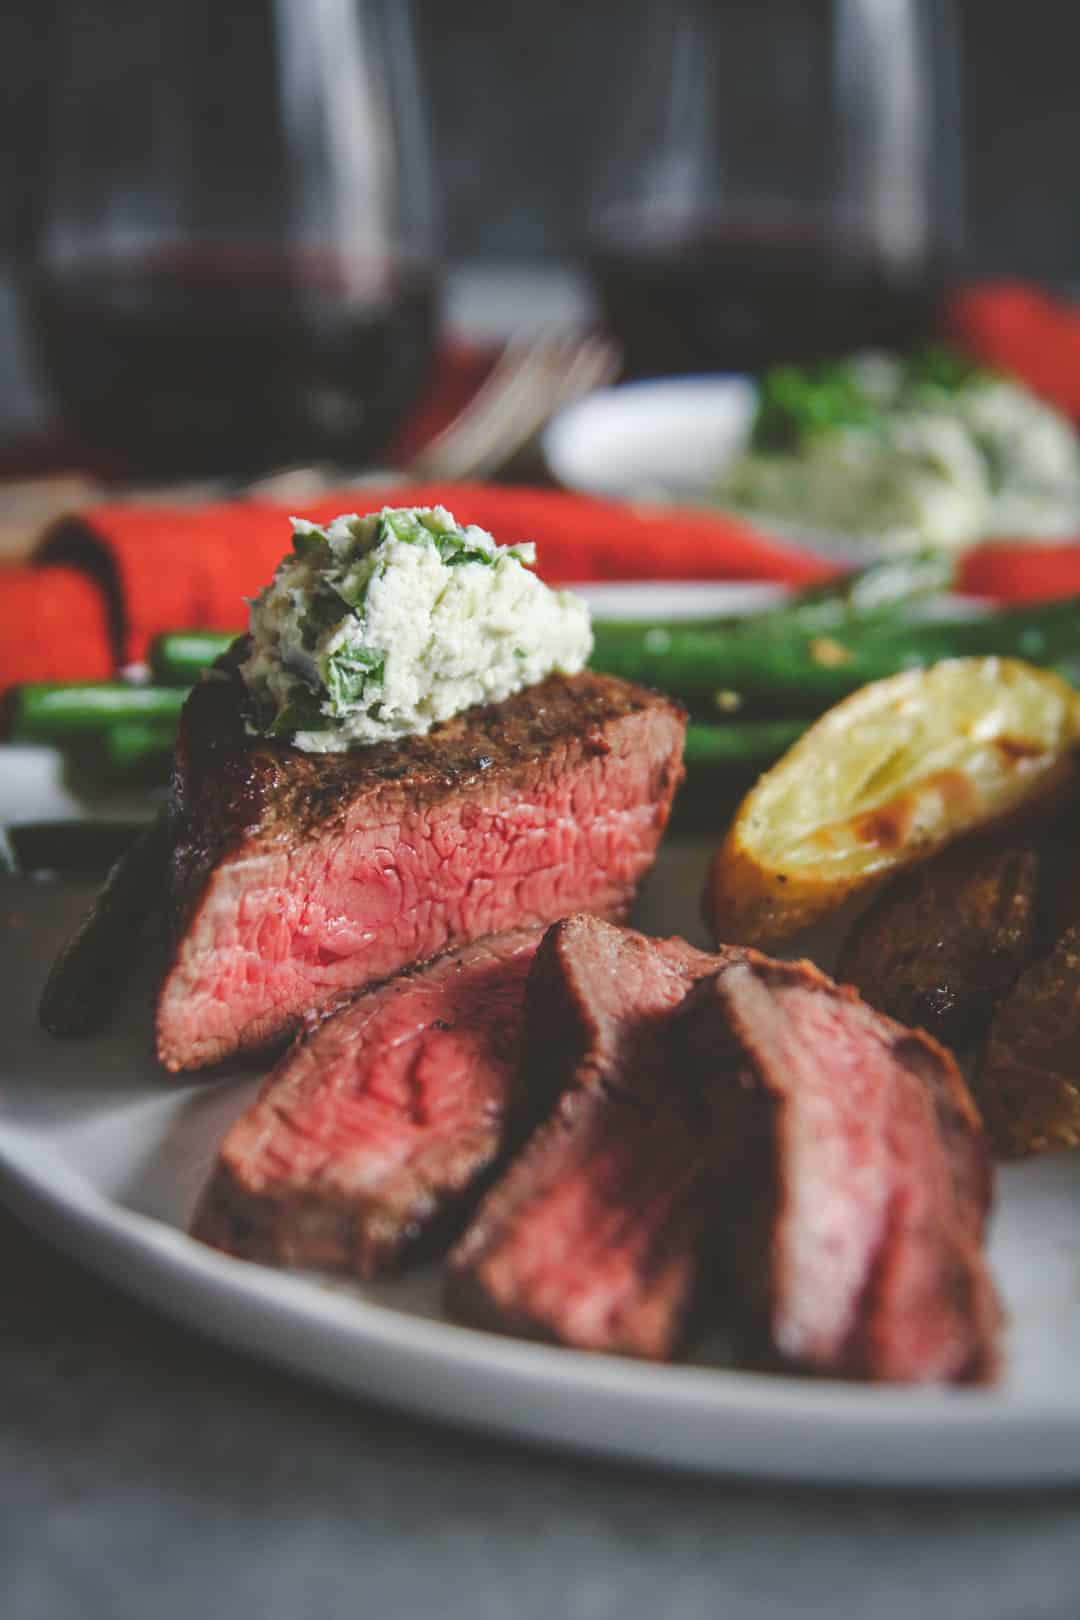 Steak with blue cheese compound butter from Home Chef meal delivery